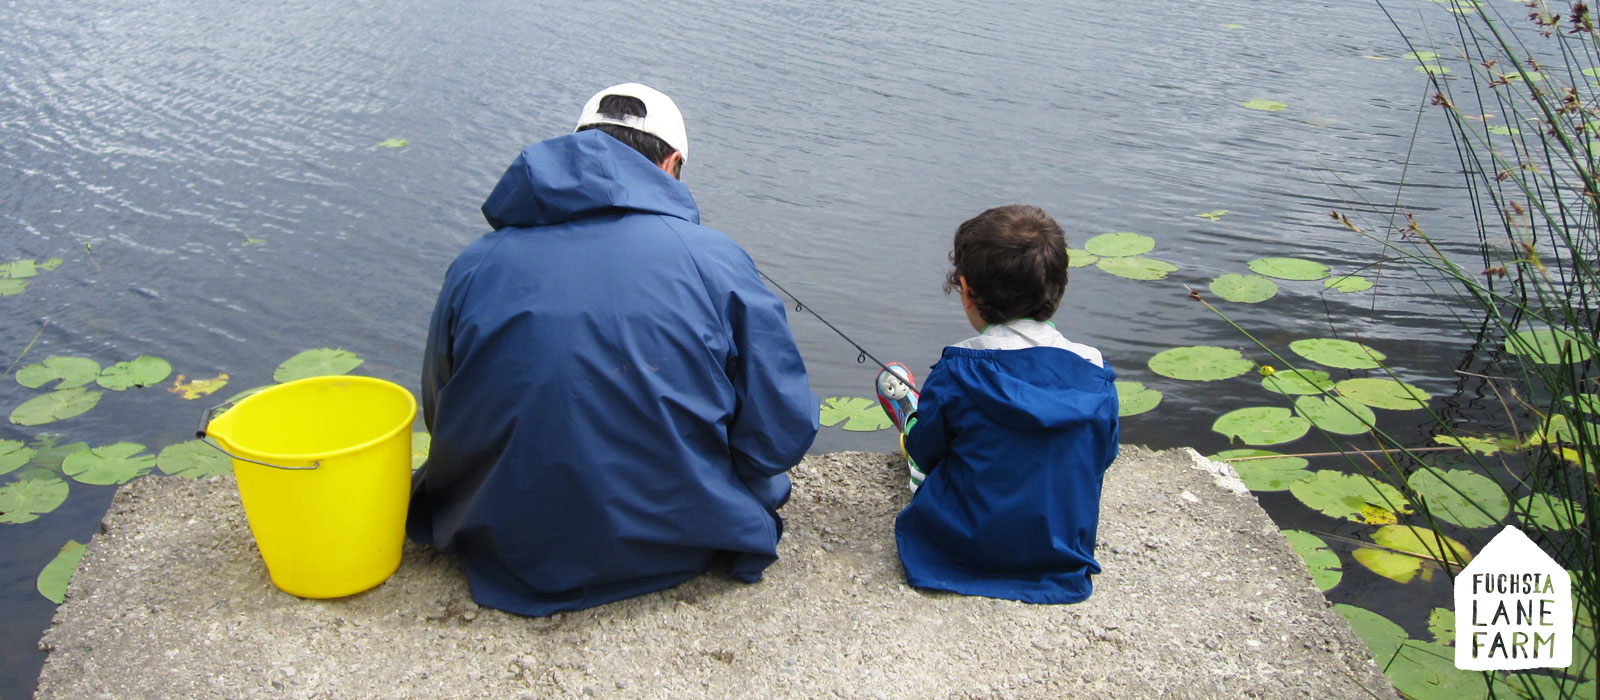 Fishing on Lough Derg